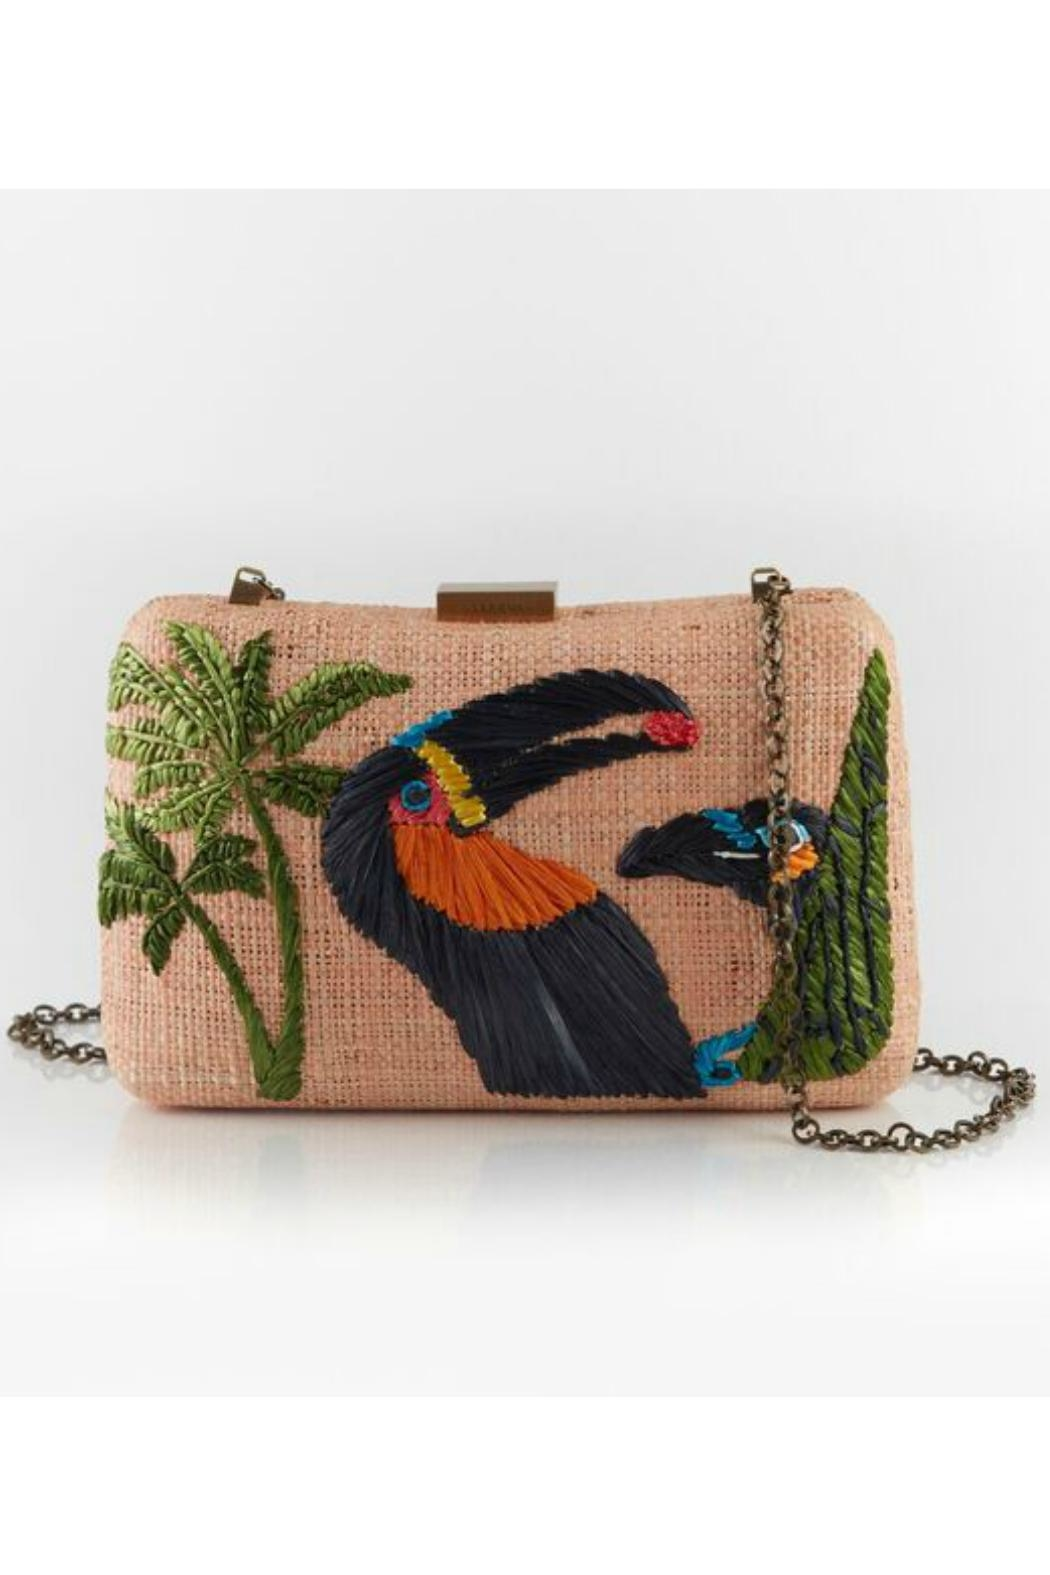 4cae86a90 Serpui Marie Marissa Tucan Clutch from New Hampshire by Stiletto ...